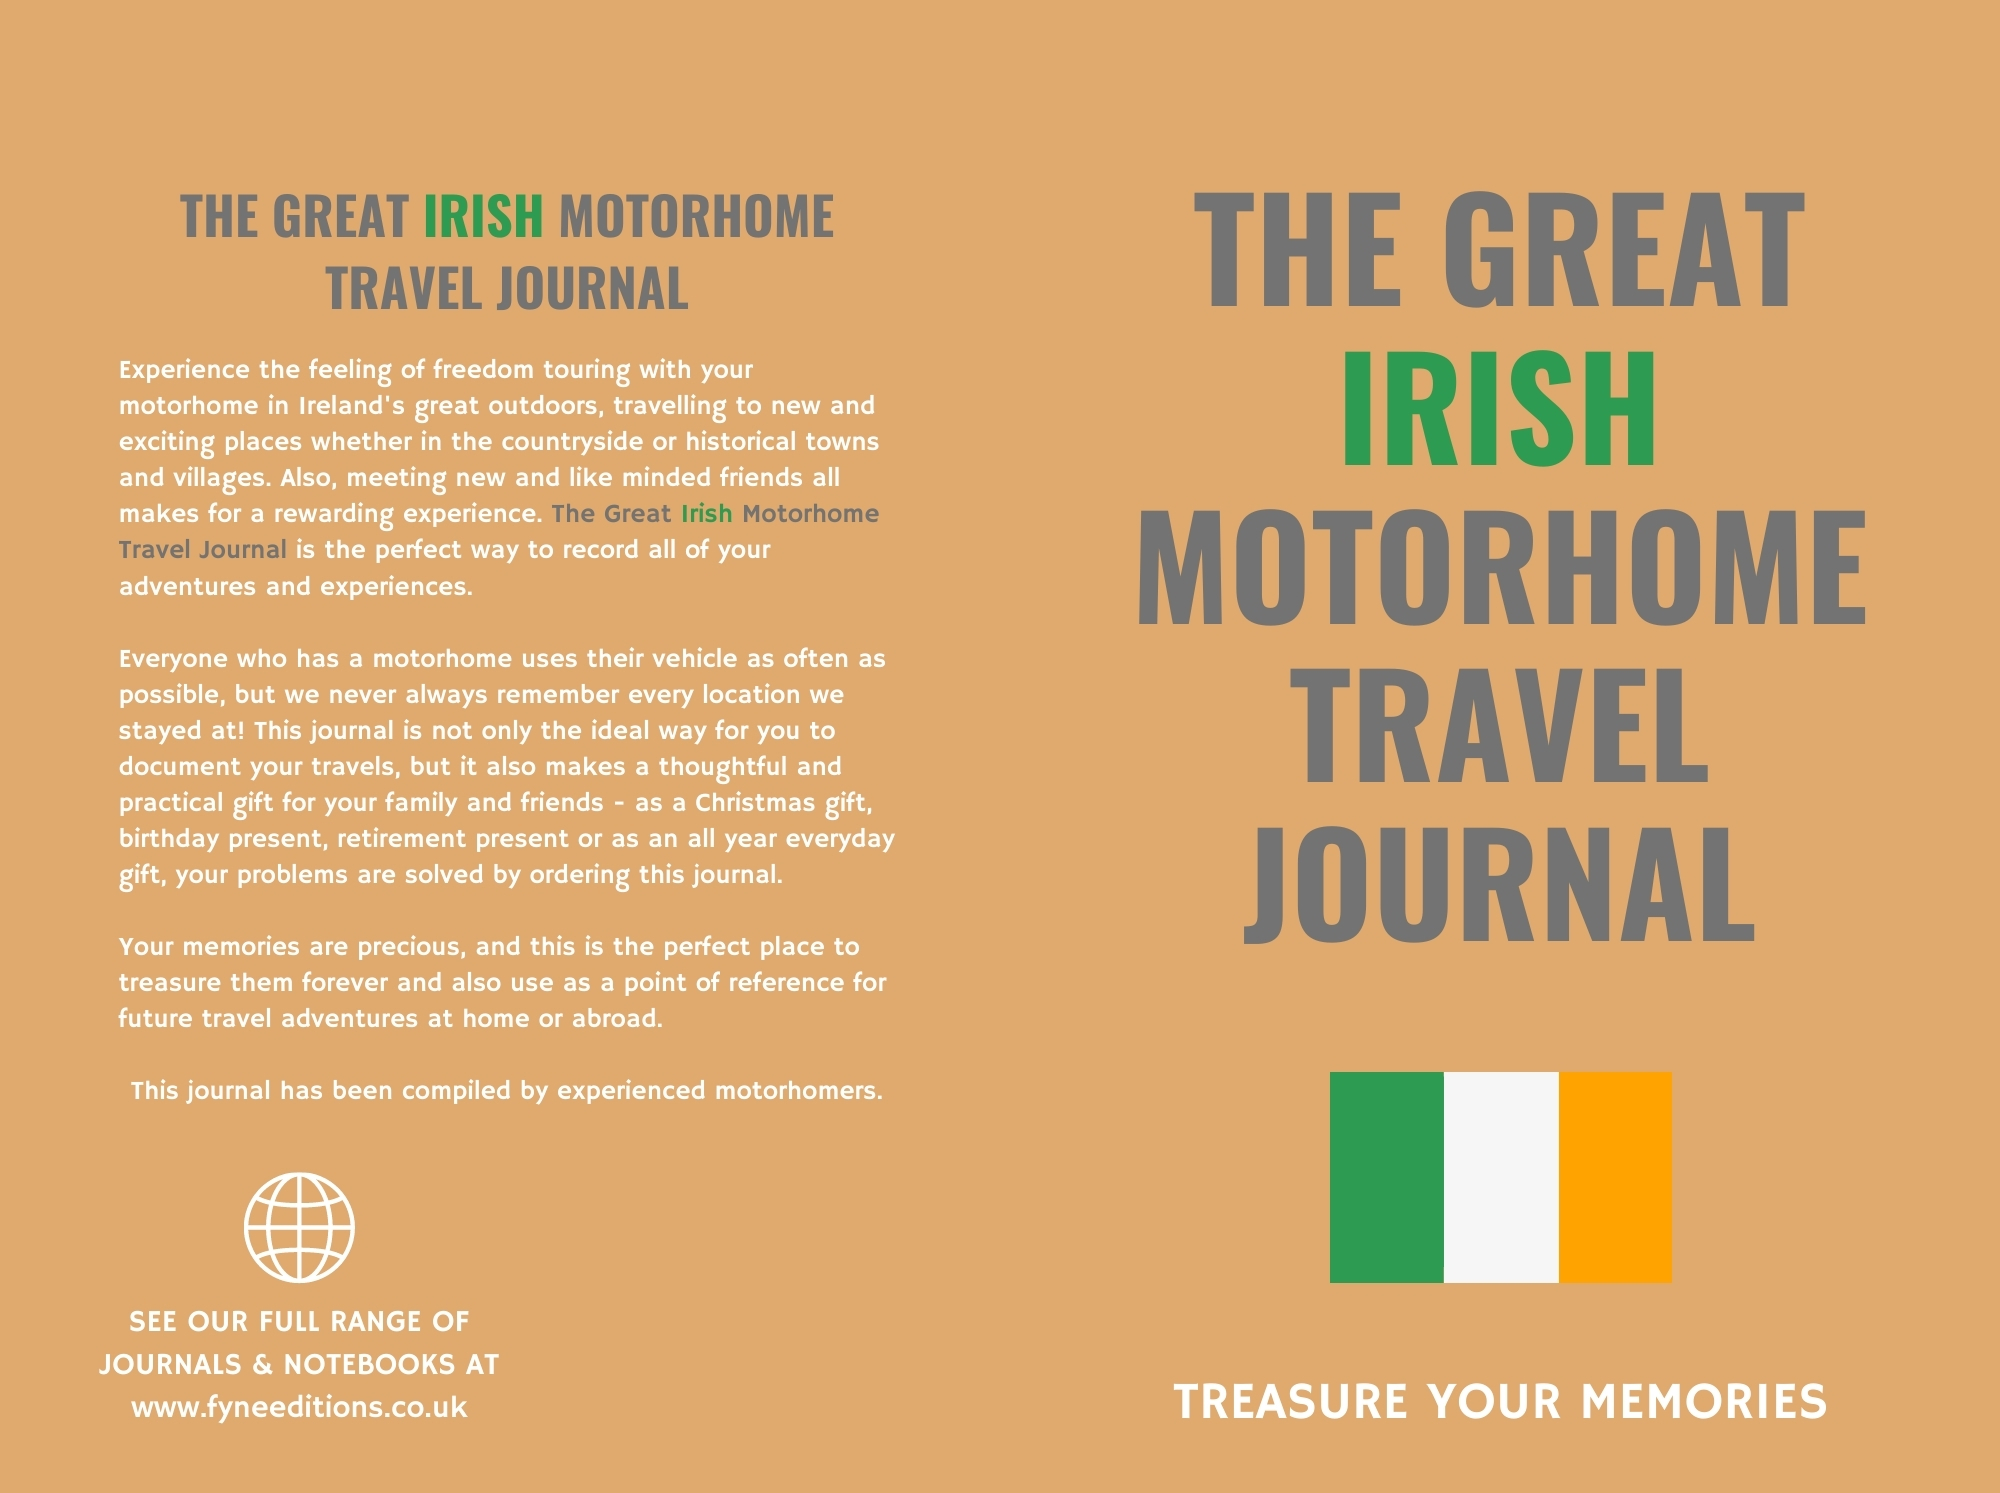 The Great Irish Motorhome Travel Journal